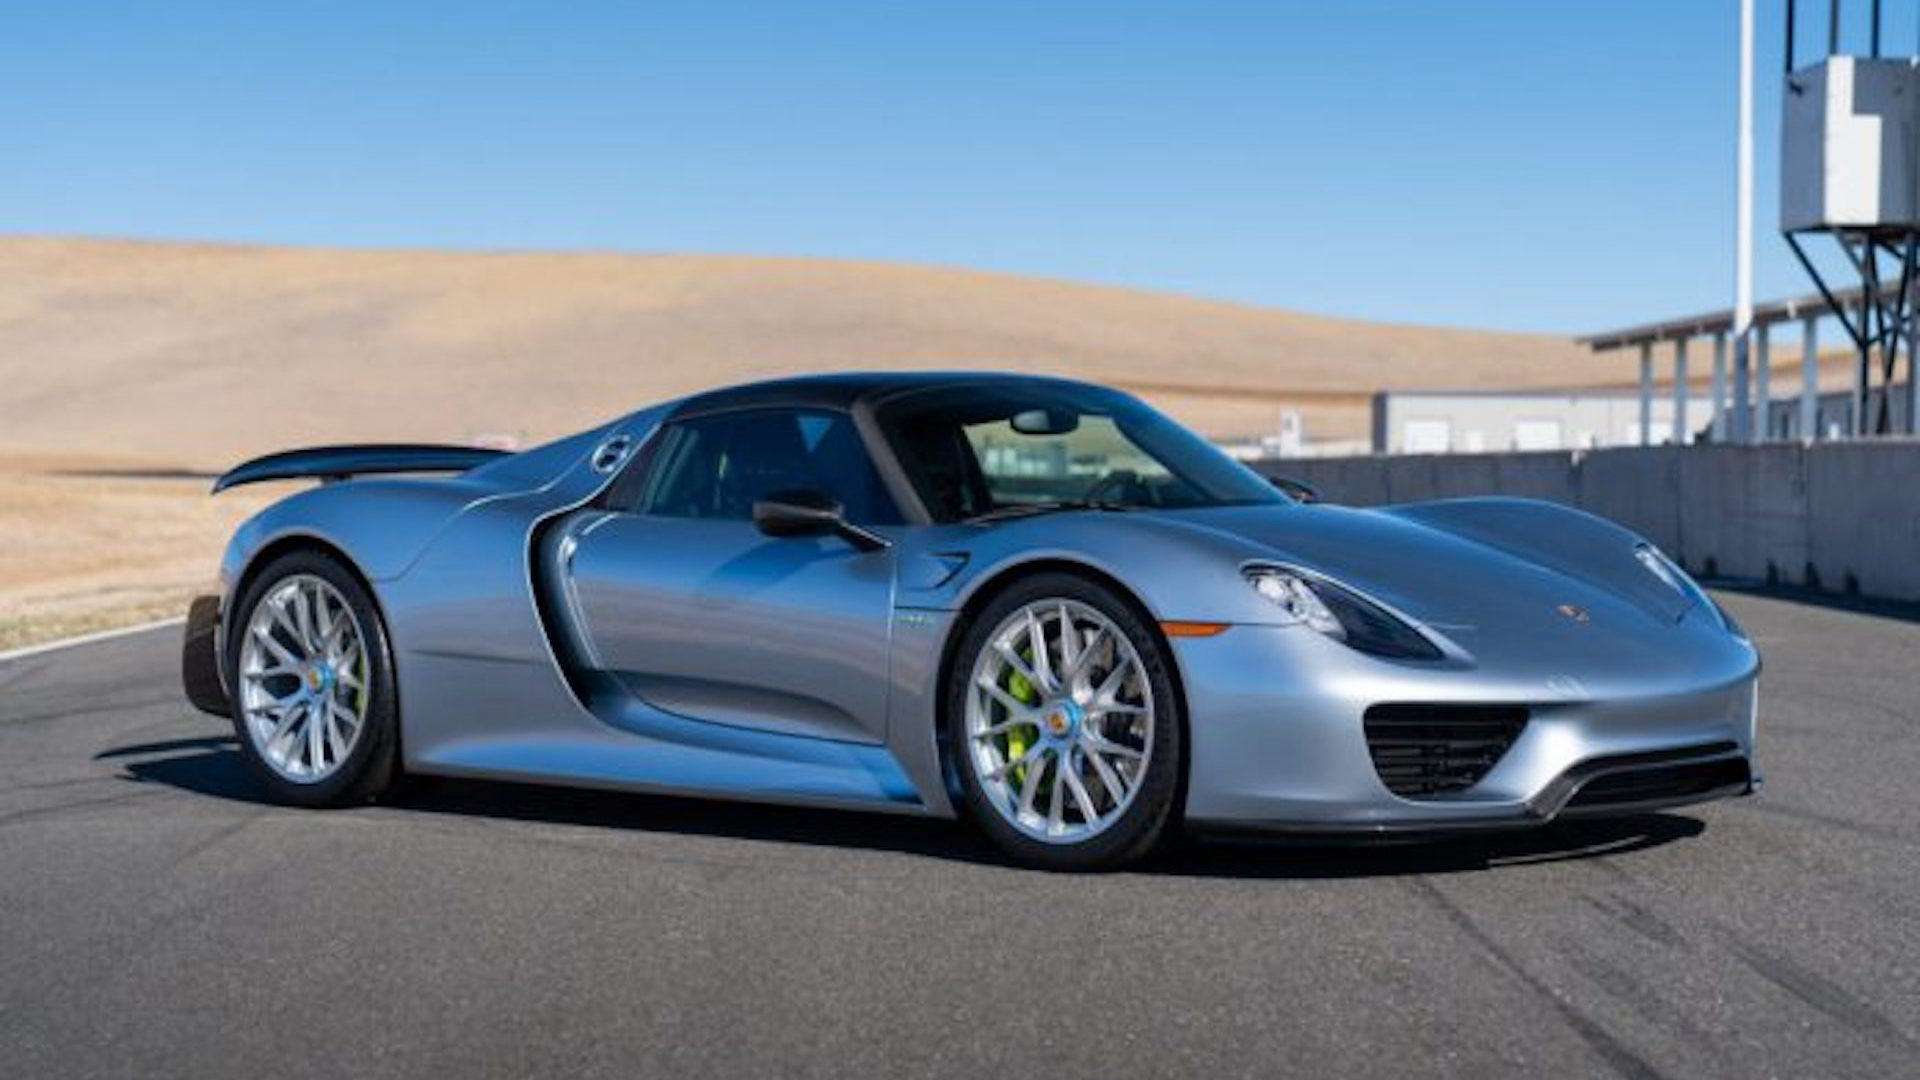 2015 Porsche 918 Spyder with Weissach Package, via Gooding & Company